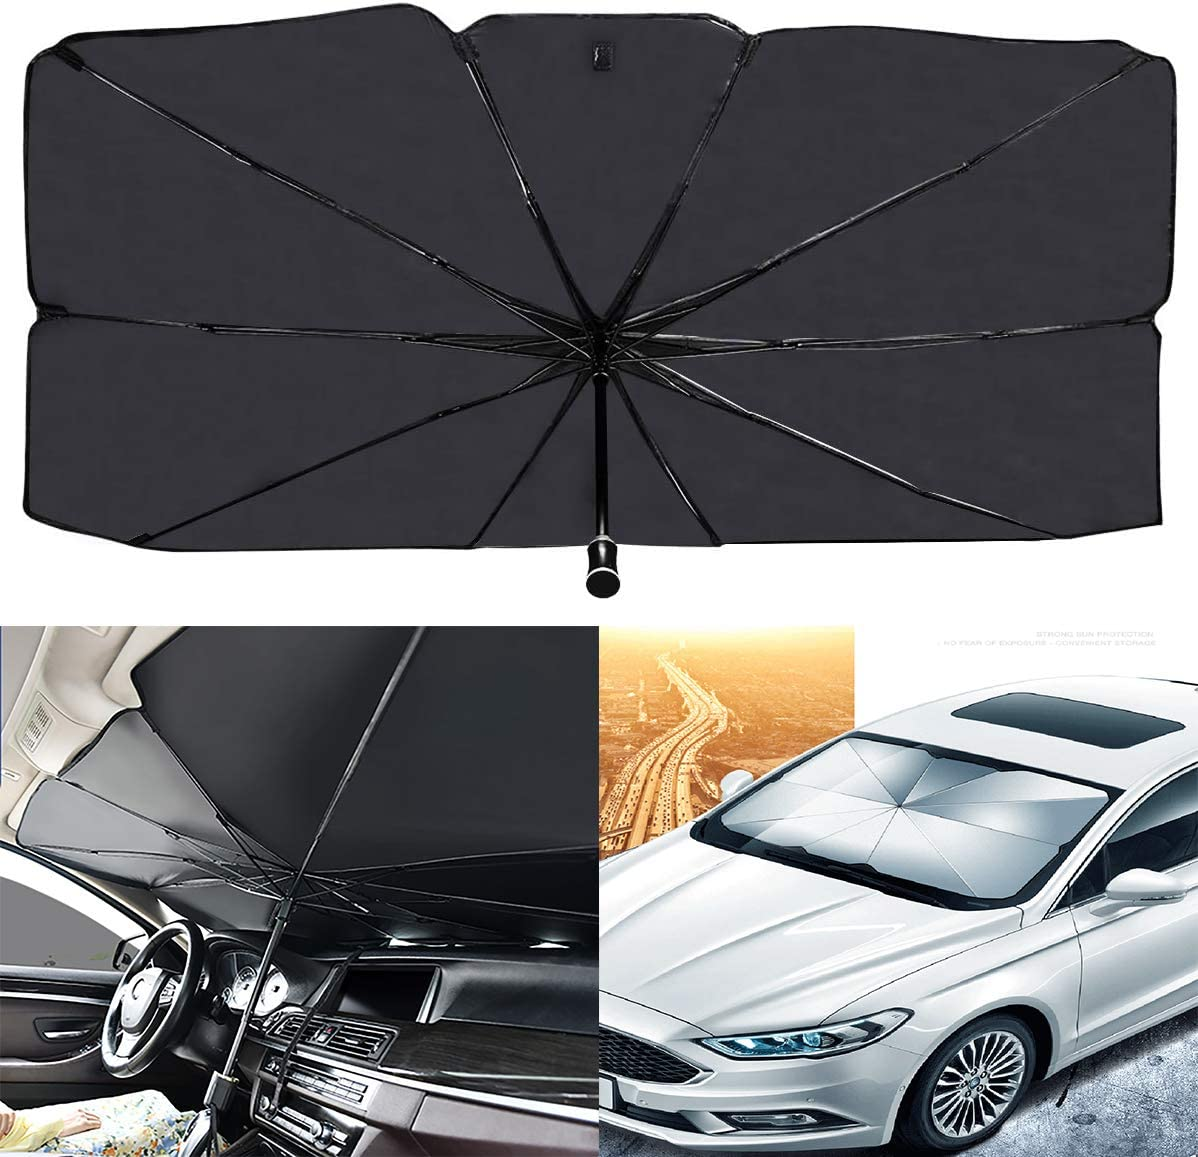 AIKESI Car Umbrella Sun Shade Cover for Windshield UV Reflecting Foldable Front Car Sunshade Umbrella, Easy to Use/Store, 57'' x 31'', Fit Most Vehicle: Automotive